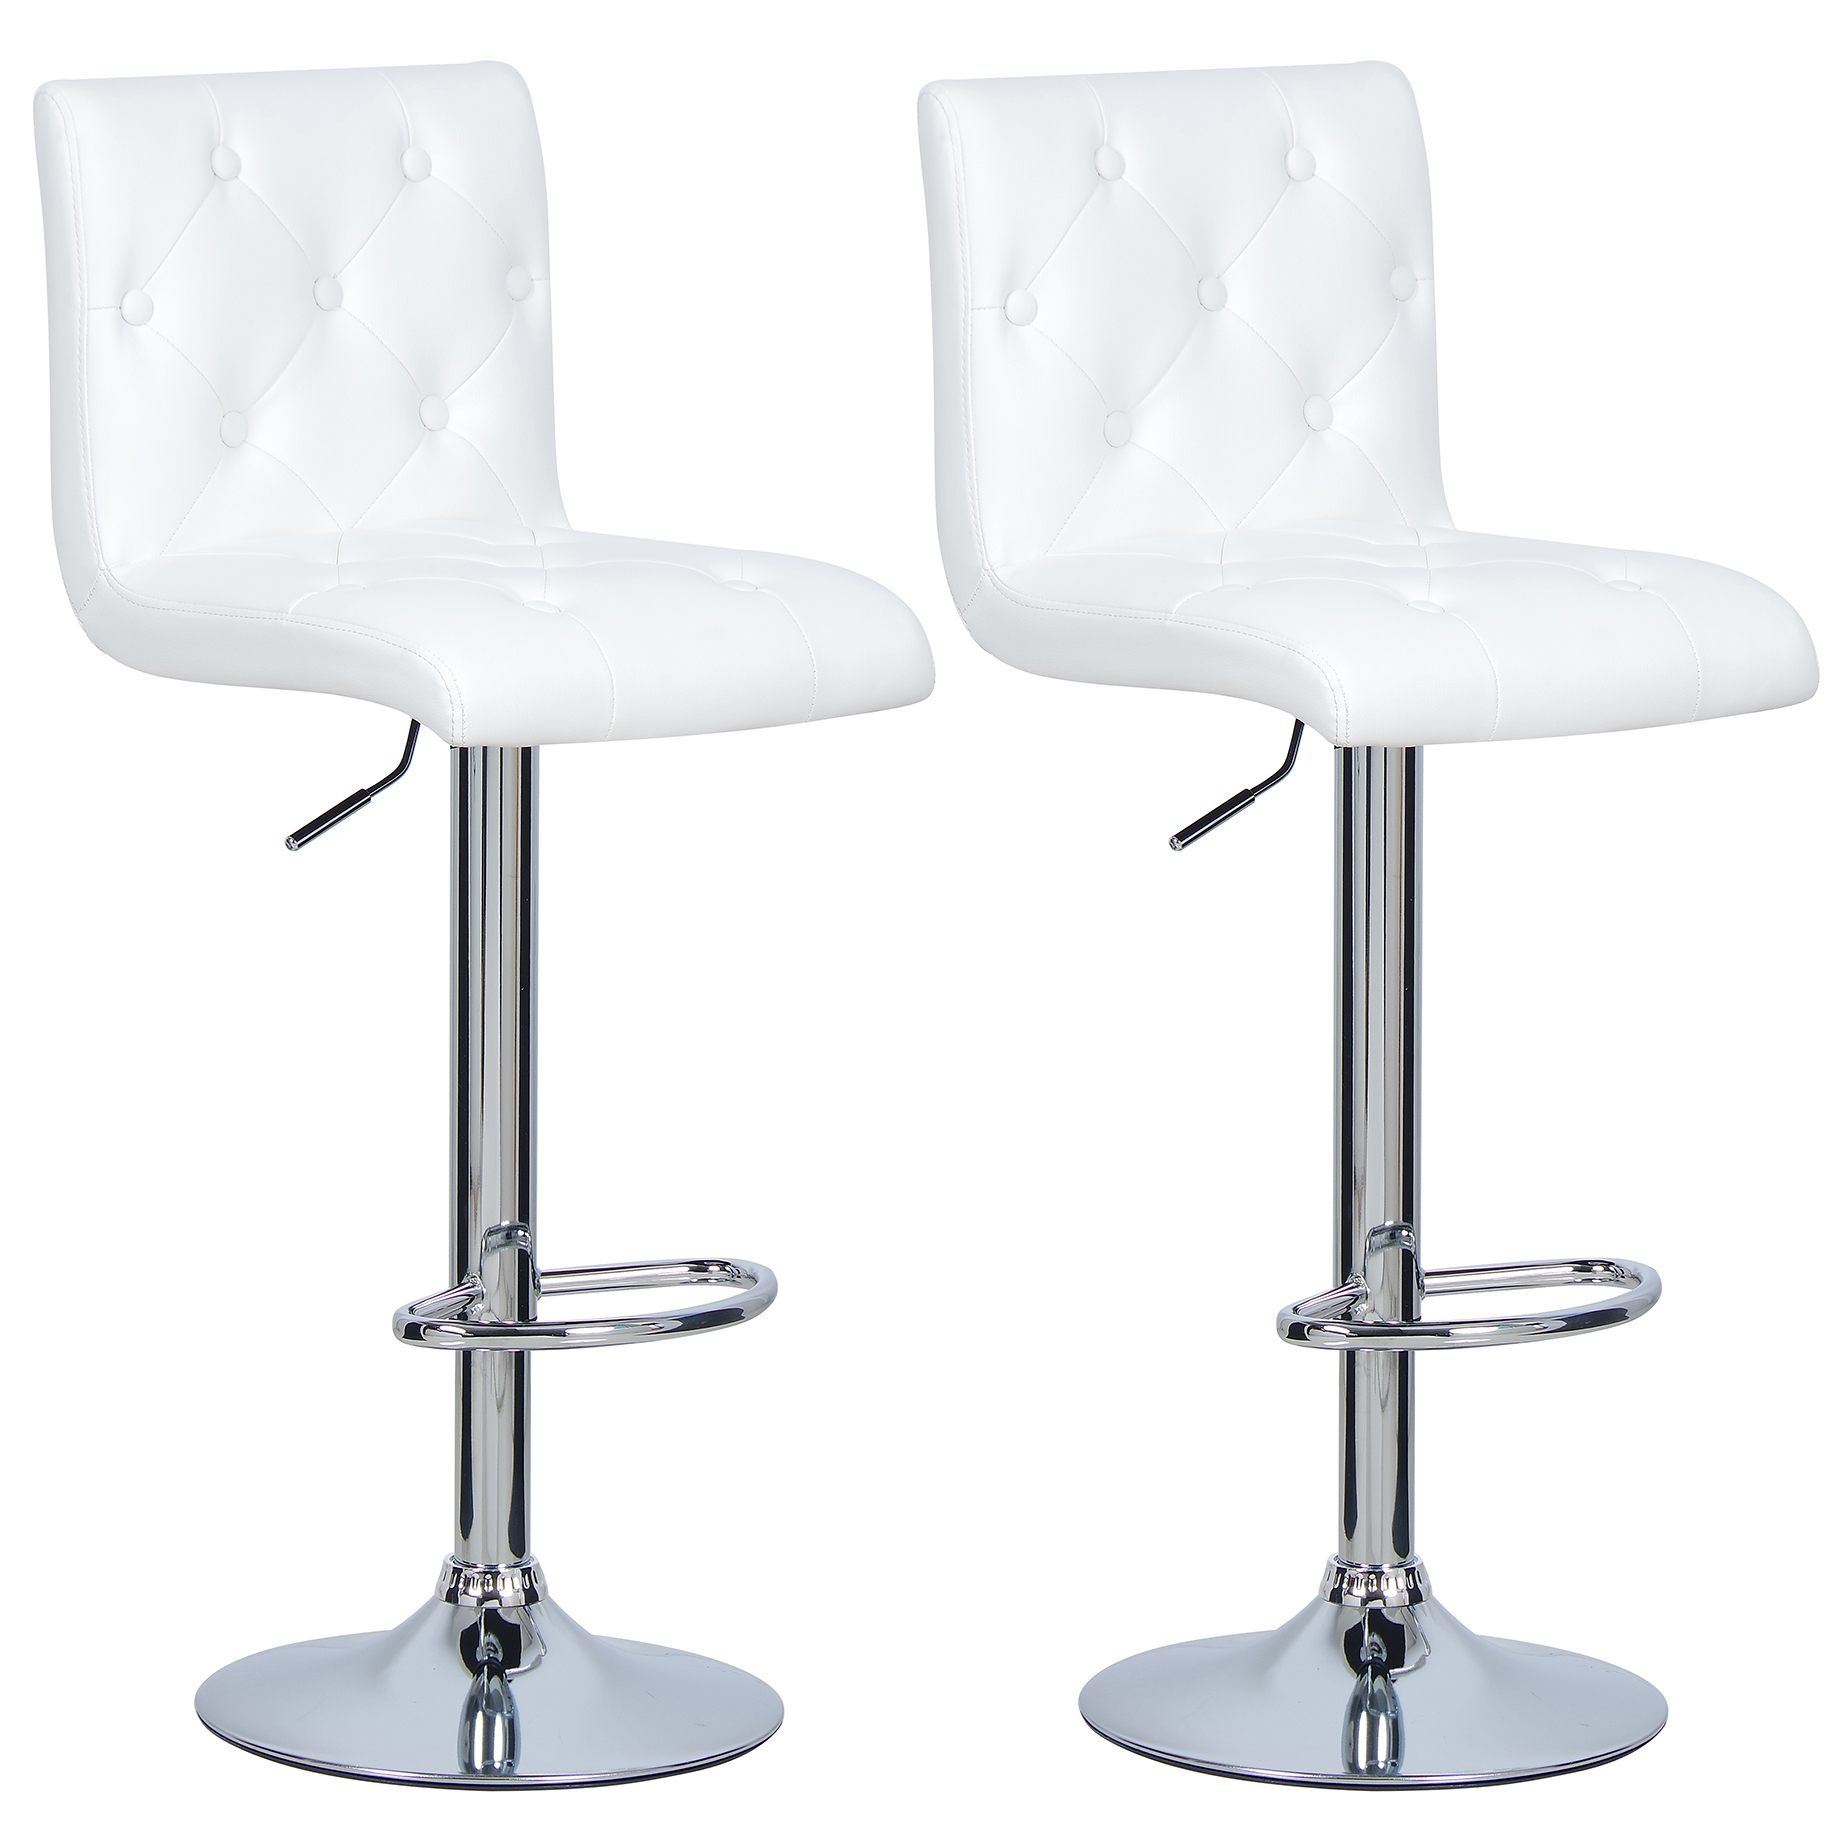 1 2 x tabouret de bar r glable chaise cuisine en pu plastique blanc f012 ebay. Black Bedroom Furniture Sets. Home Design Ideas